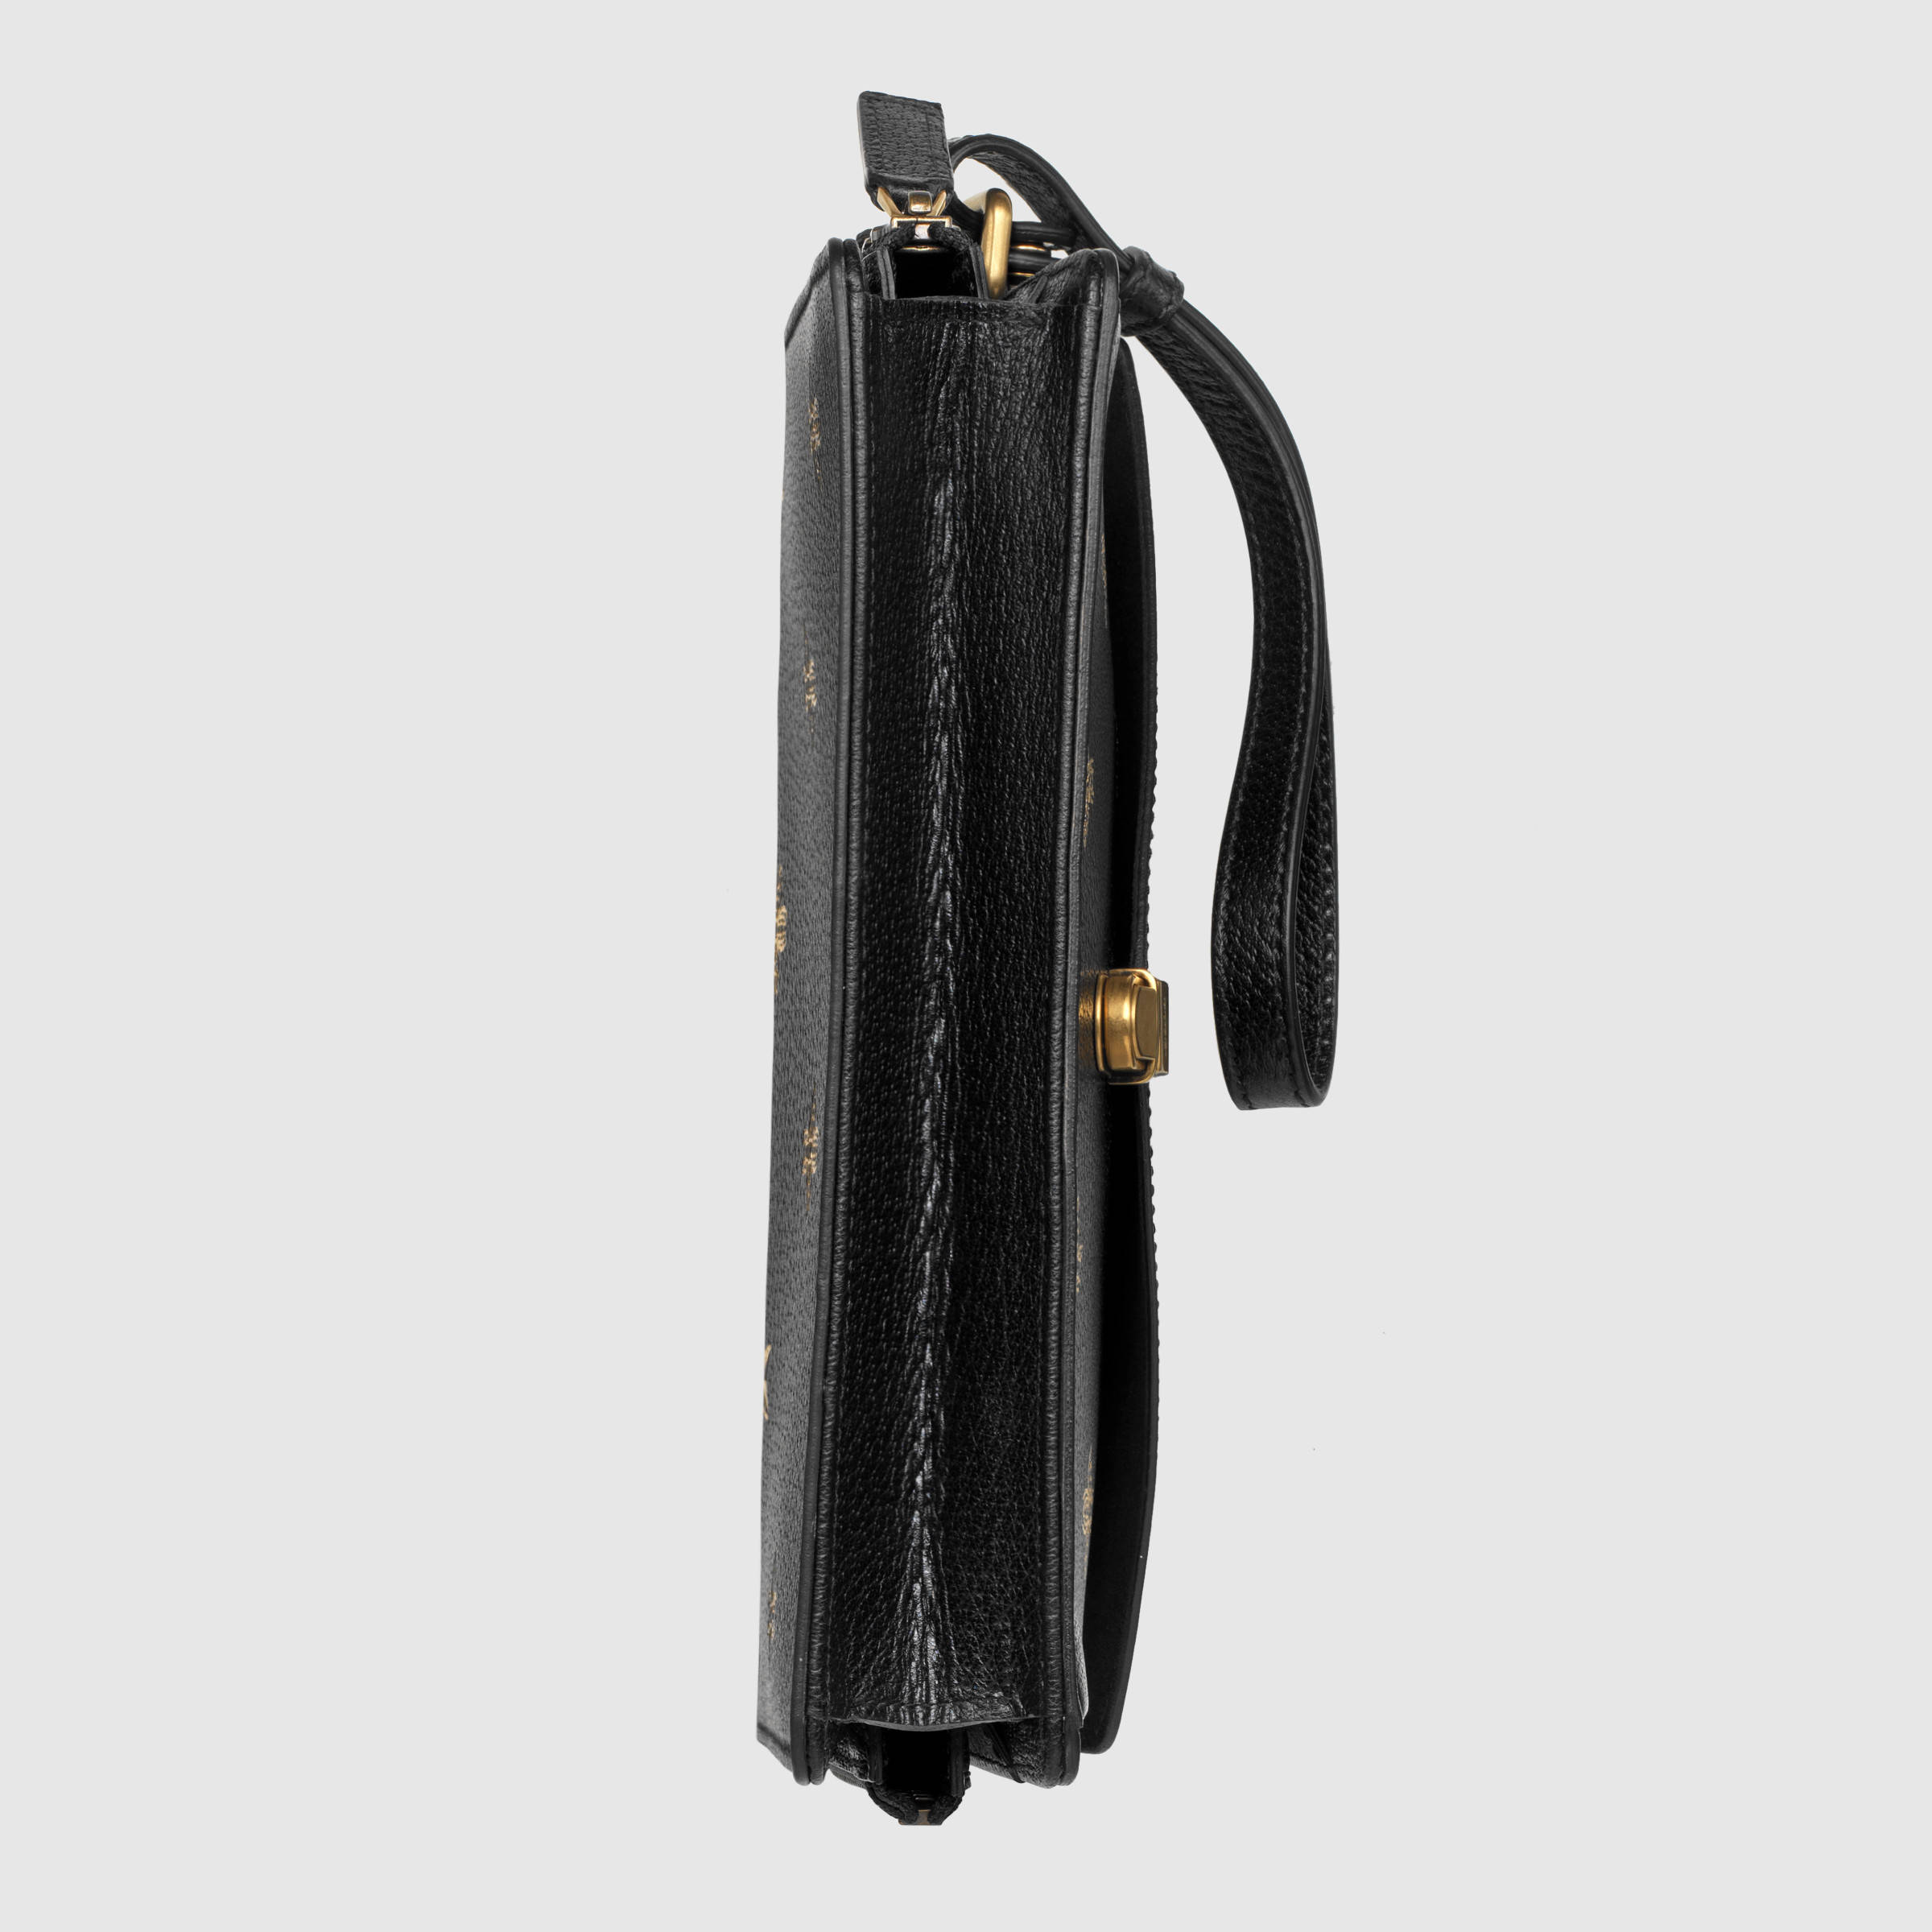 【数量限定】GUCCI Bee Star leather men's bag Black